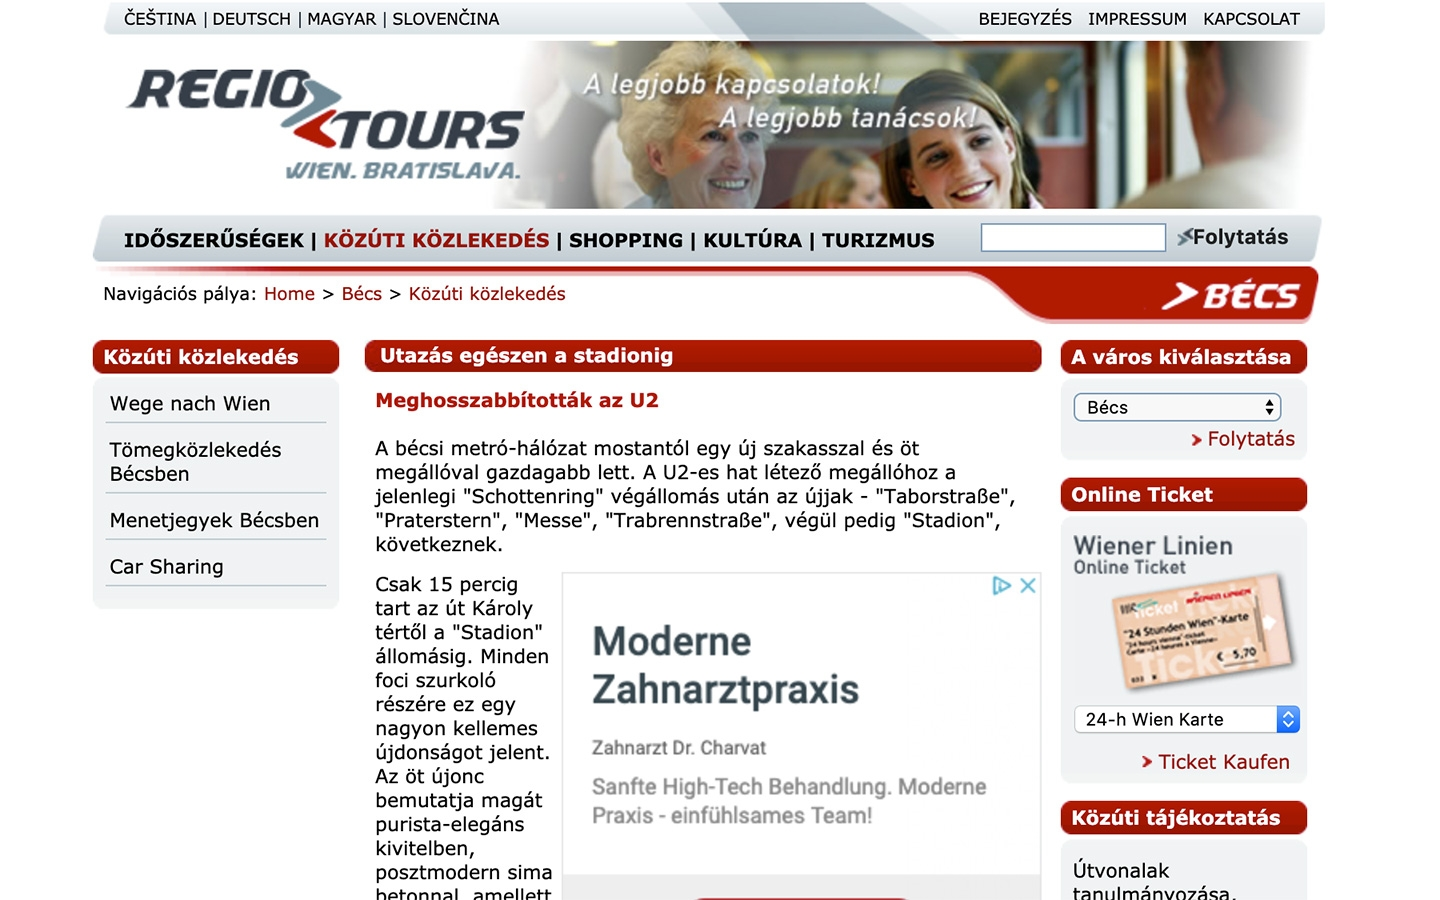 RegioTours | regiotours.net | 2005 (Screen Only 04) © echonet communication